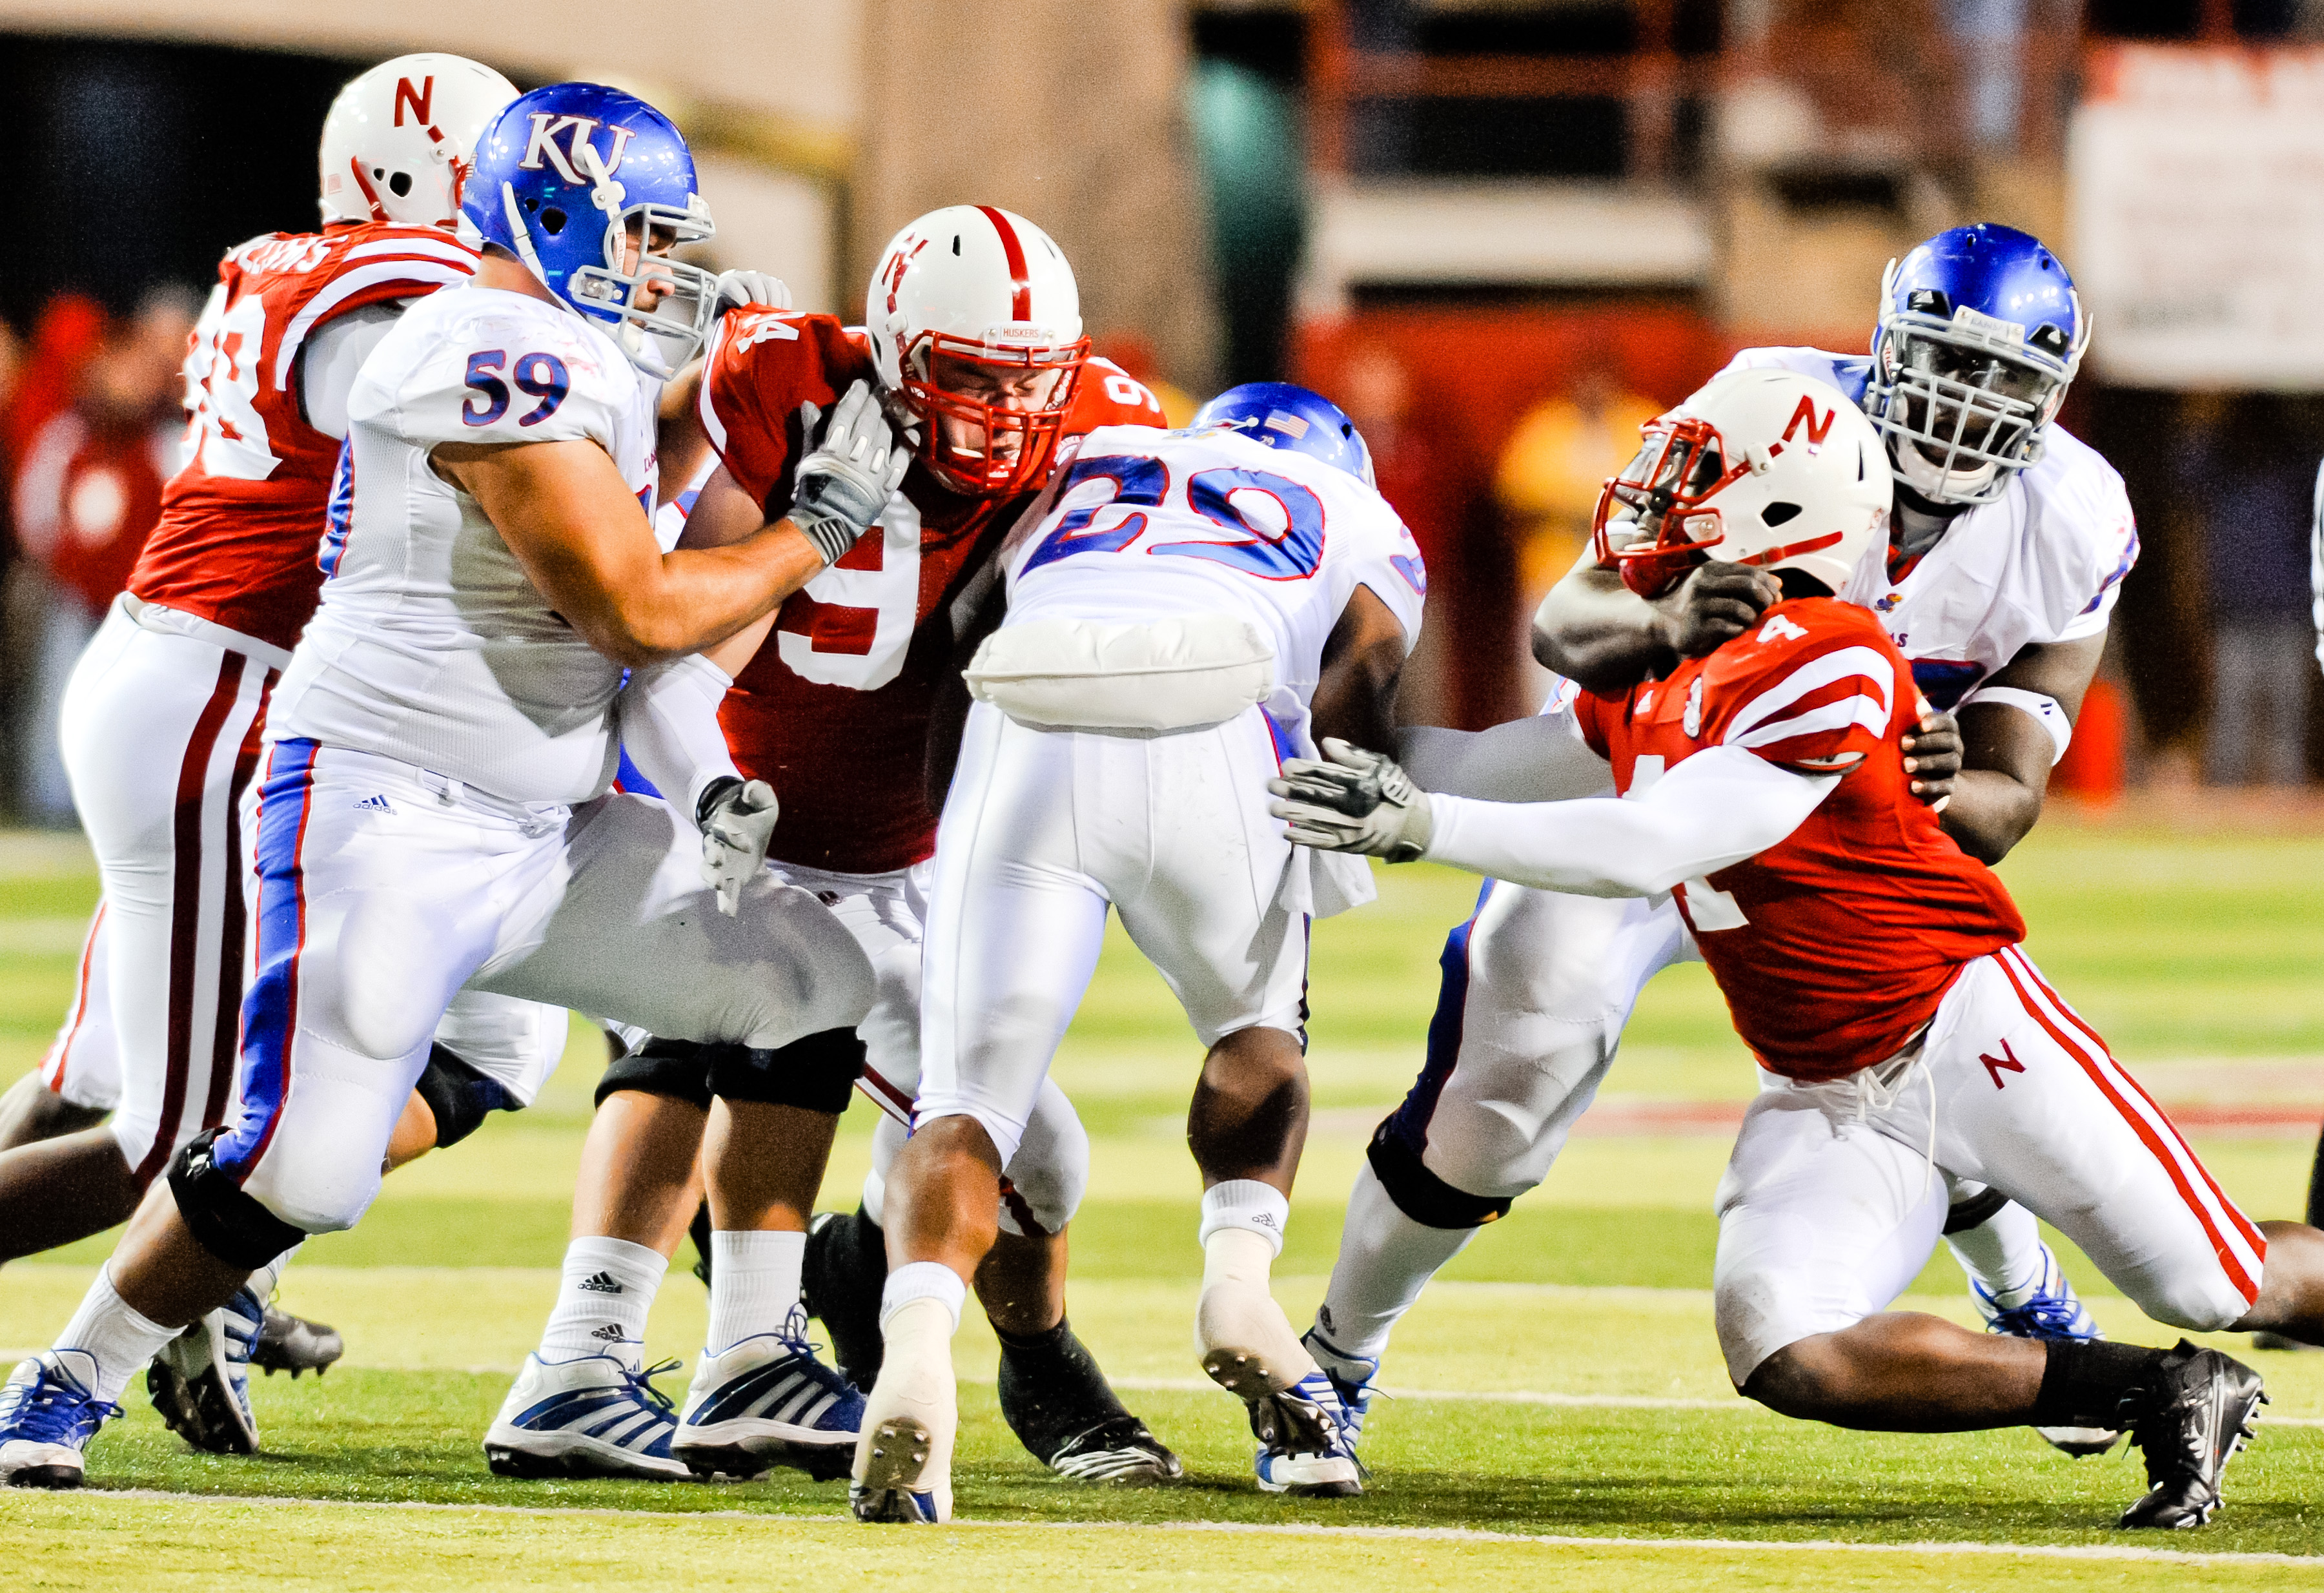 LINCOLN, NE - NOVEMBER 13: James Sims #29 of the Kansas Jayhawks leans for extra yards against the Nebraska Cornhusker defense during their game at Memorial Stadium on November 13, 2010 in Lincoln, Nebraska. Nebraska Defeated Kansas 20-3. (Photo by Eric F